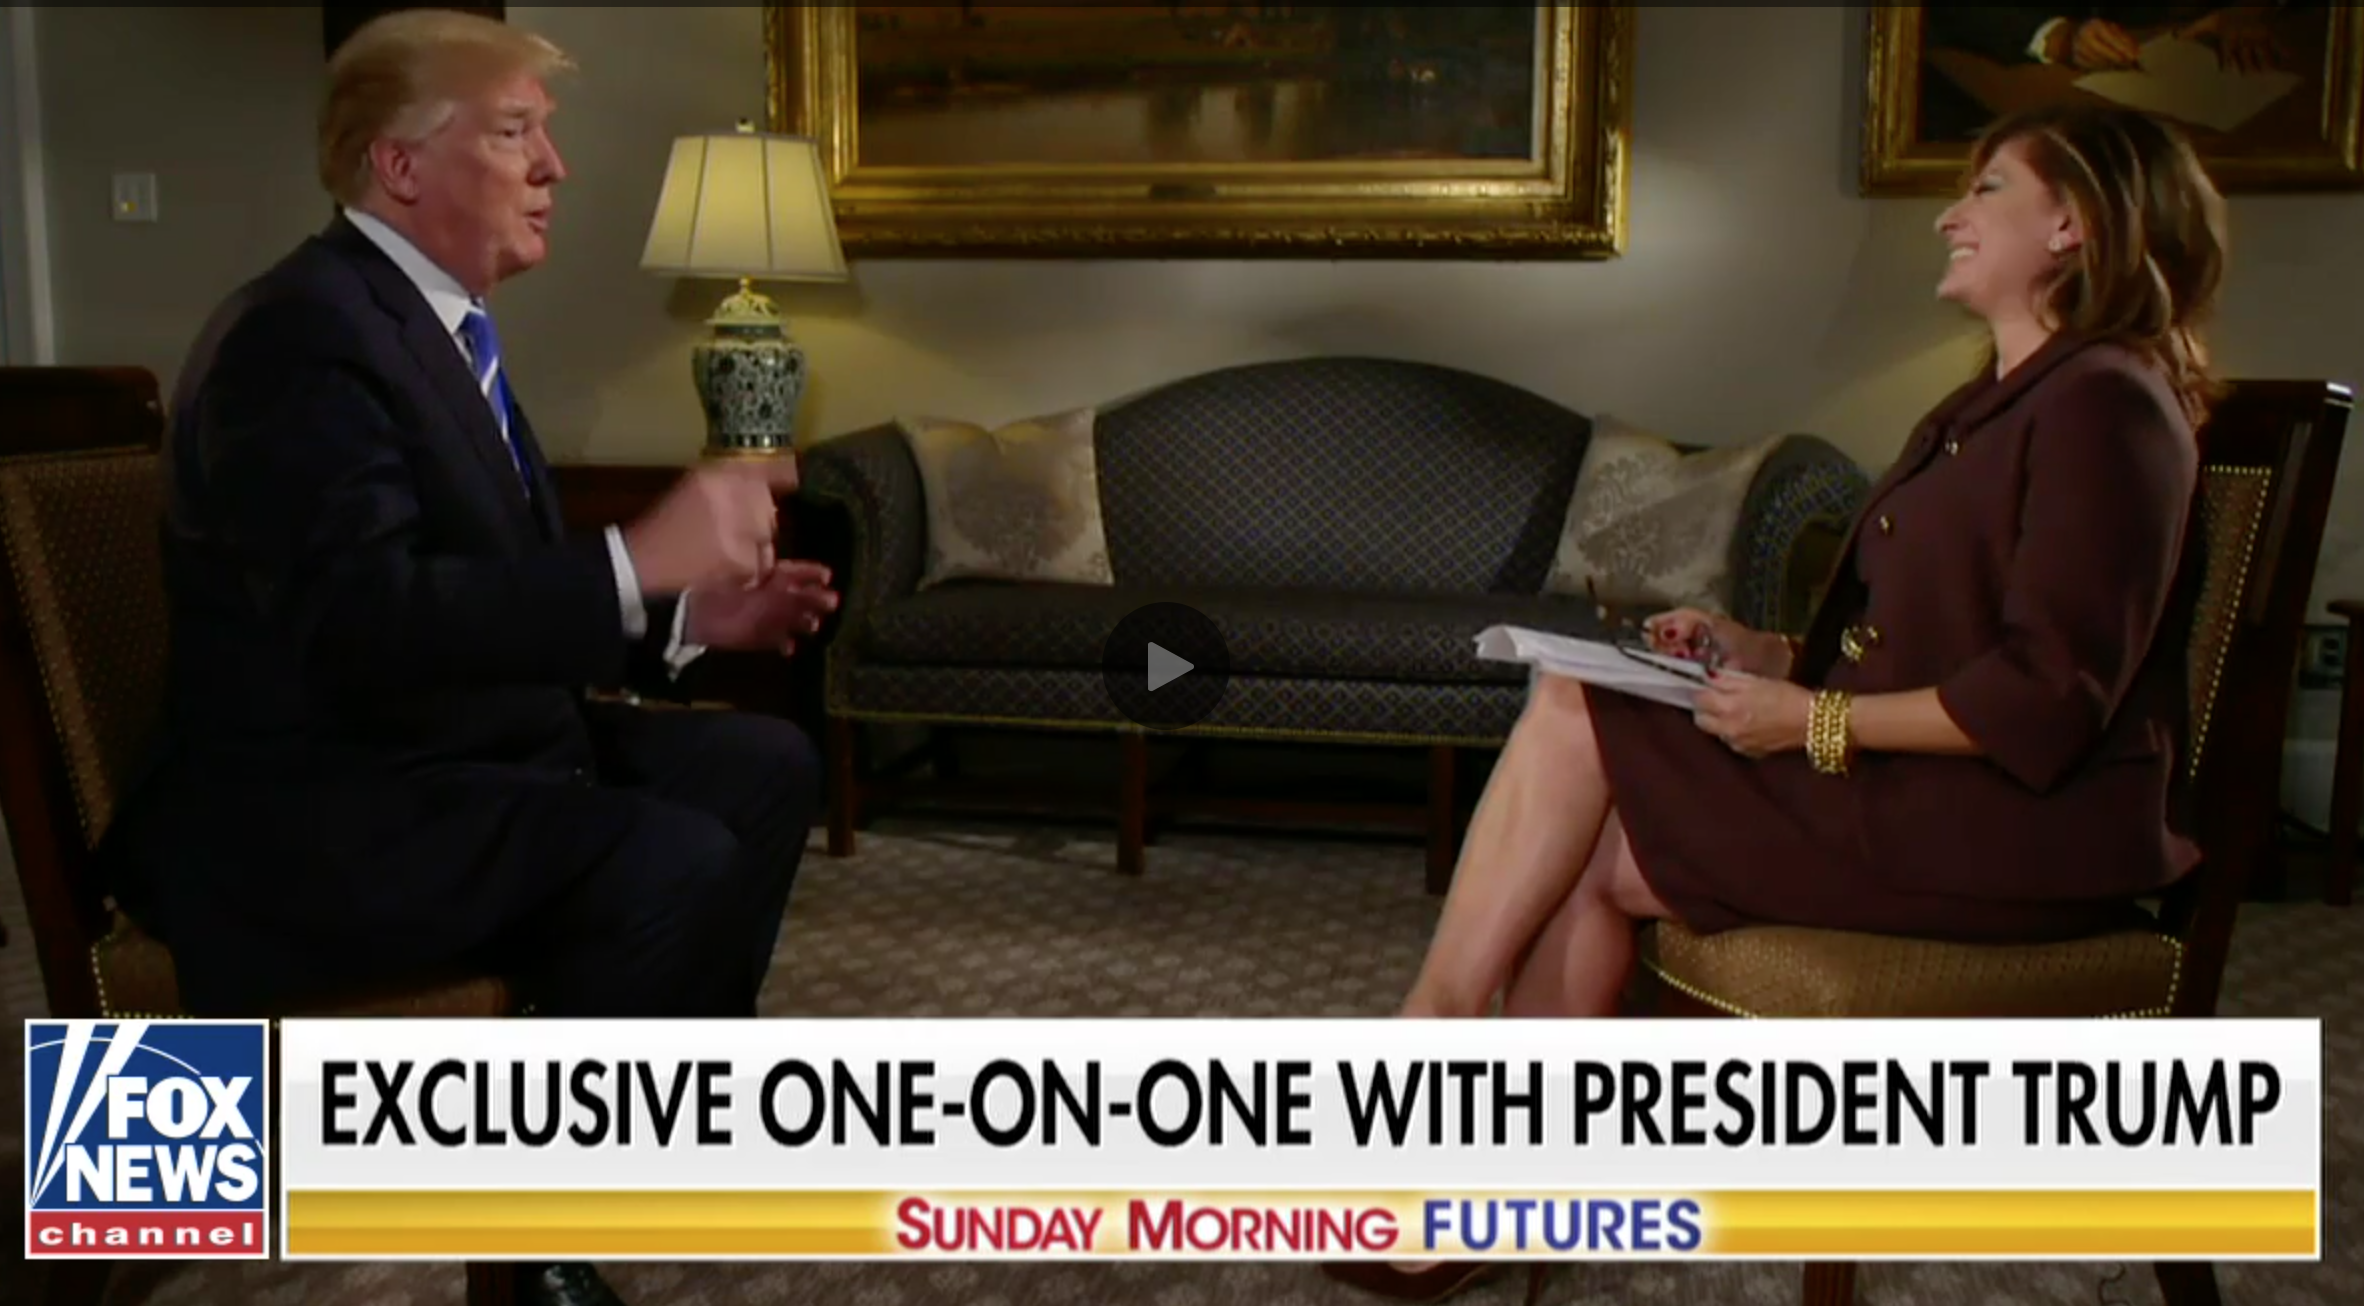 Trump's latest big interview is both funny and terrifying